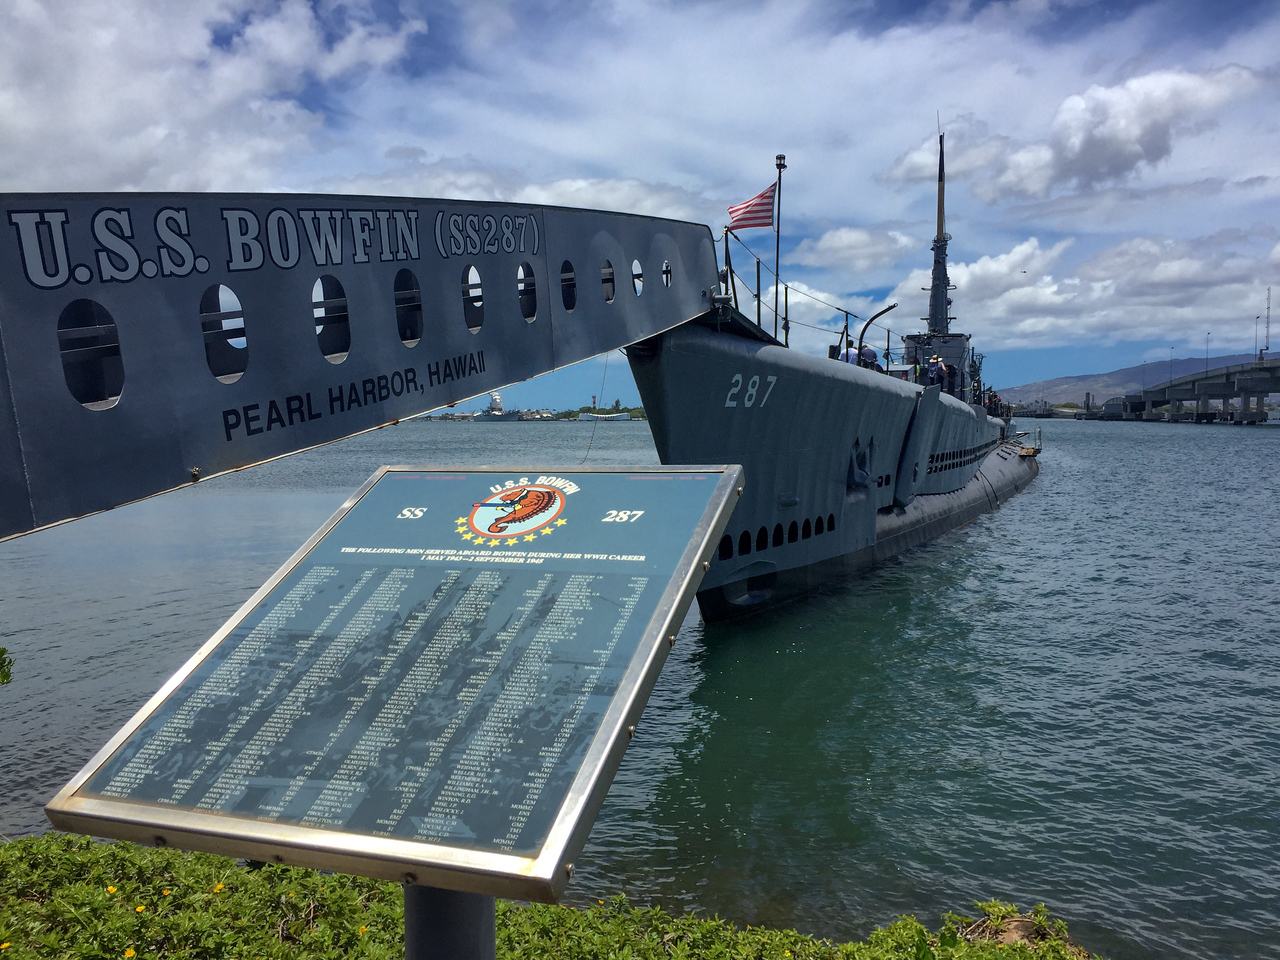 Hawaii 2017; USS Bowfin Pearl Harbor and USS Arizona Memorial. Oahu: Waikiki and Honolulu